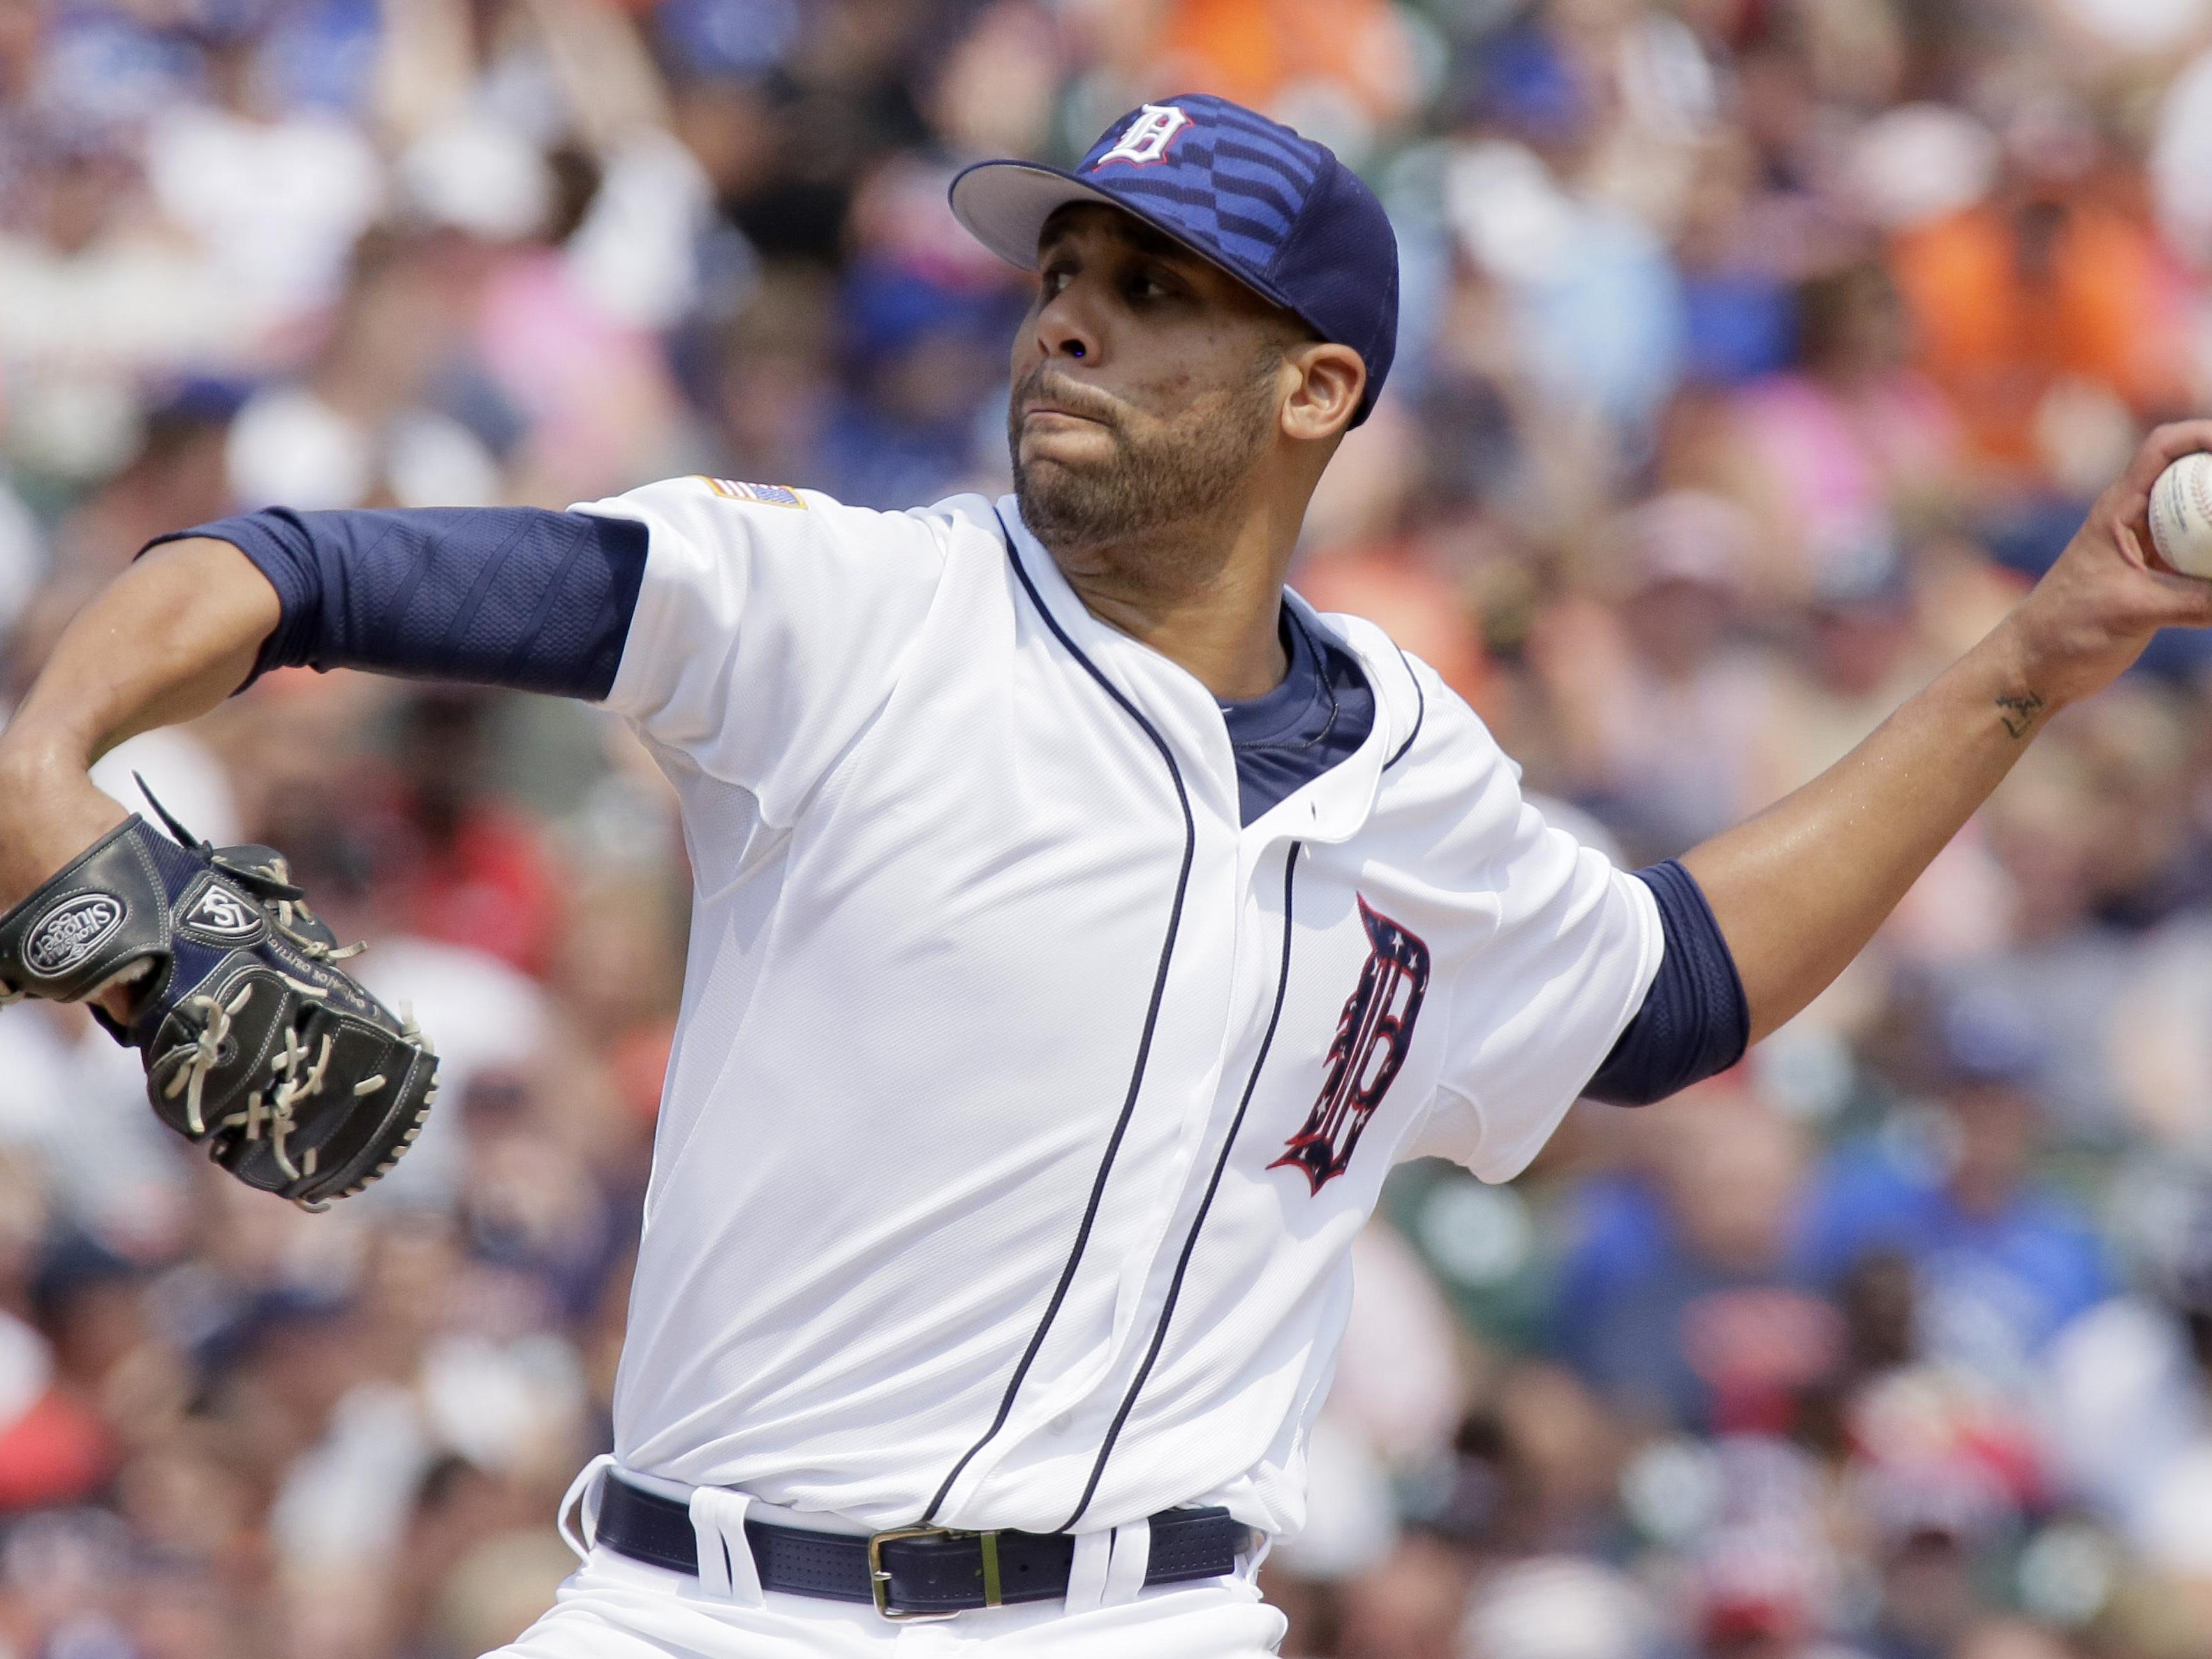 David Price was chosen for the MLB All-Star Game.